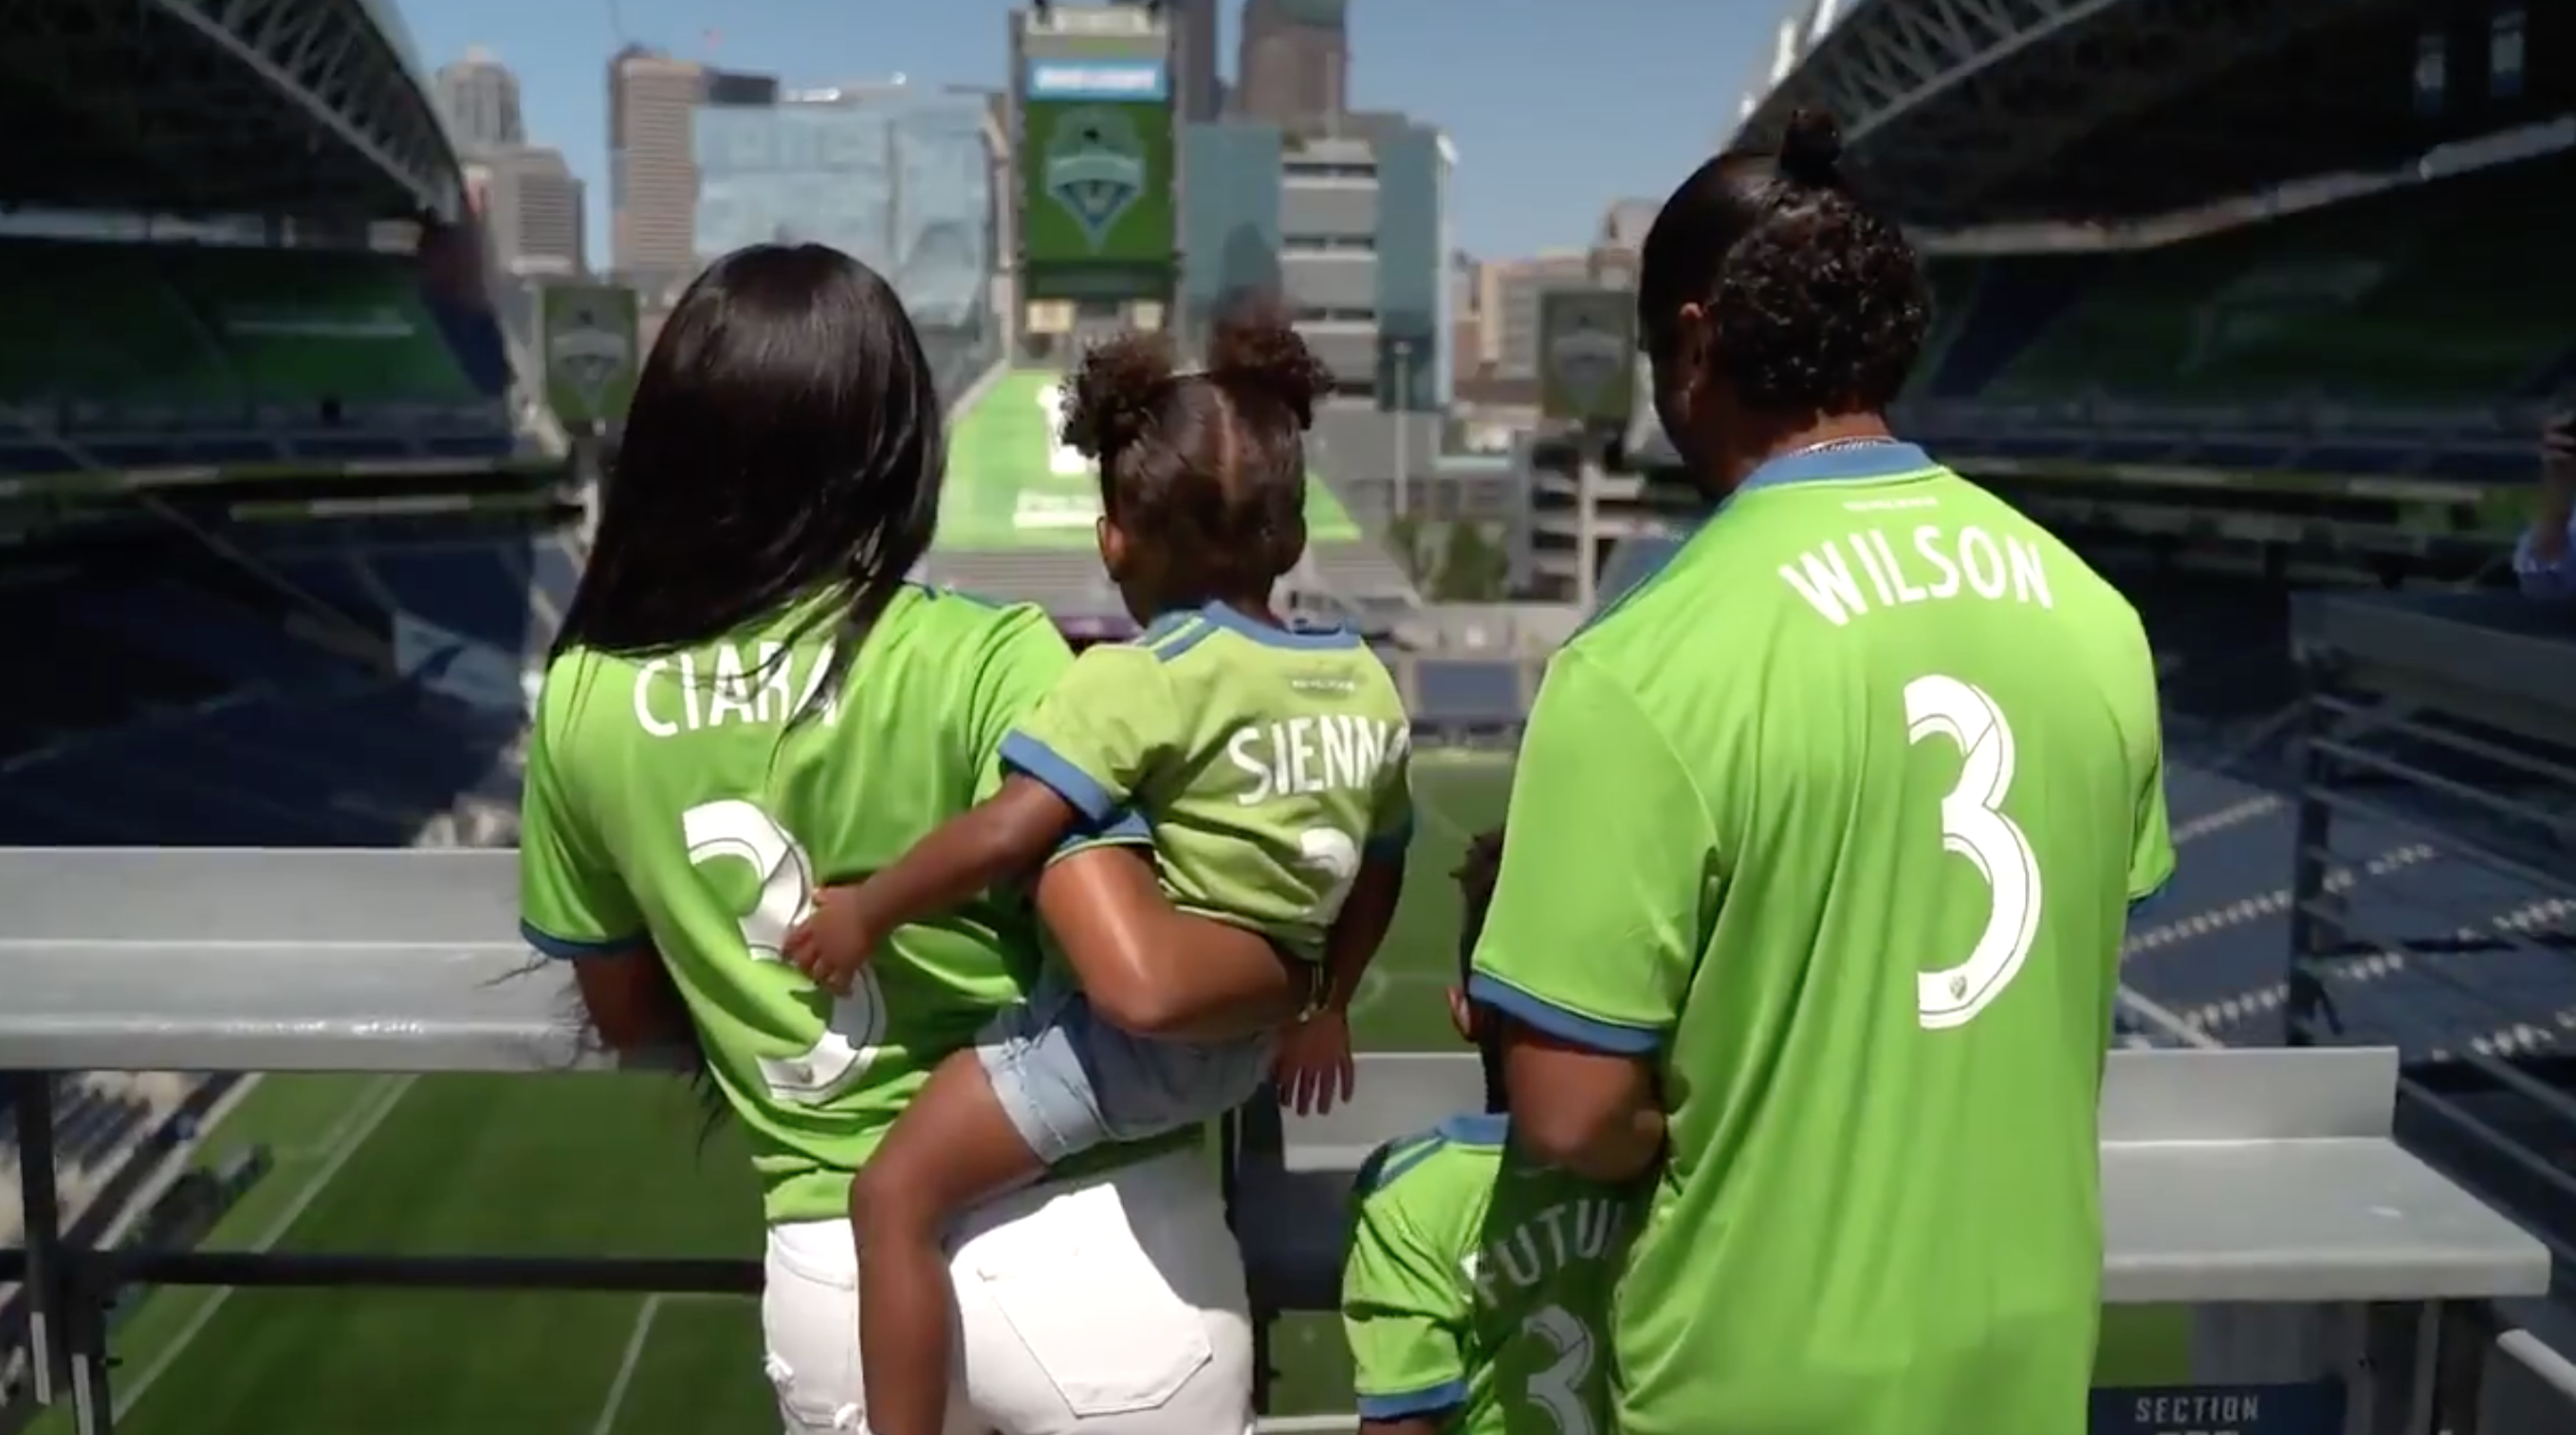 soccer, russell wilson, seattle sounders, ciara, Macklemore, Terry Myerson, wire